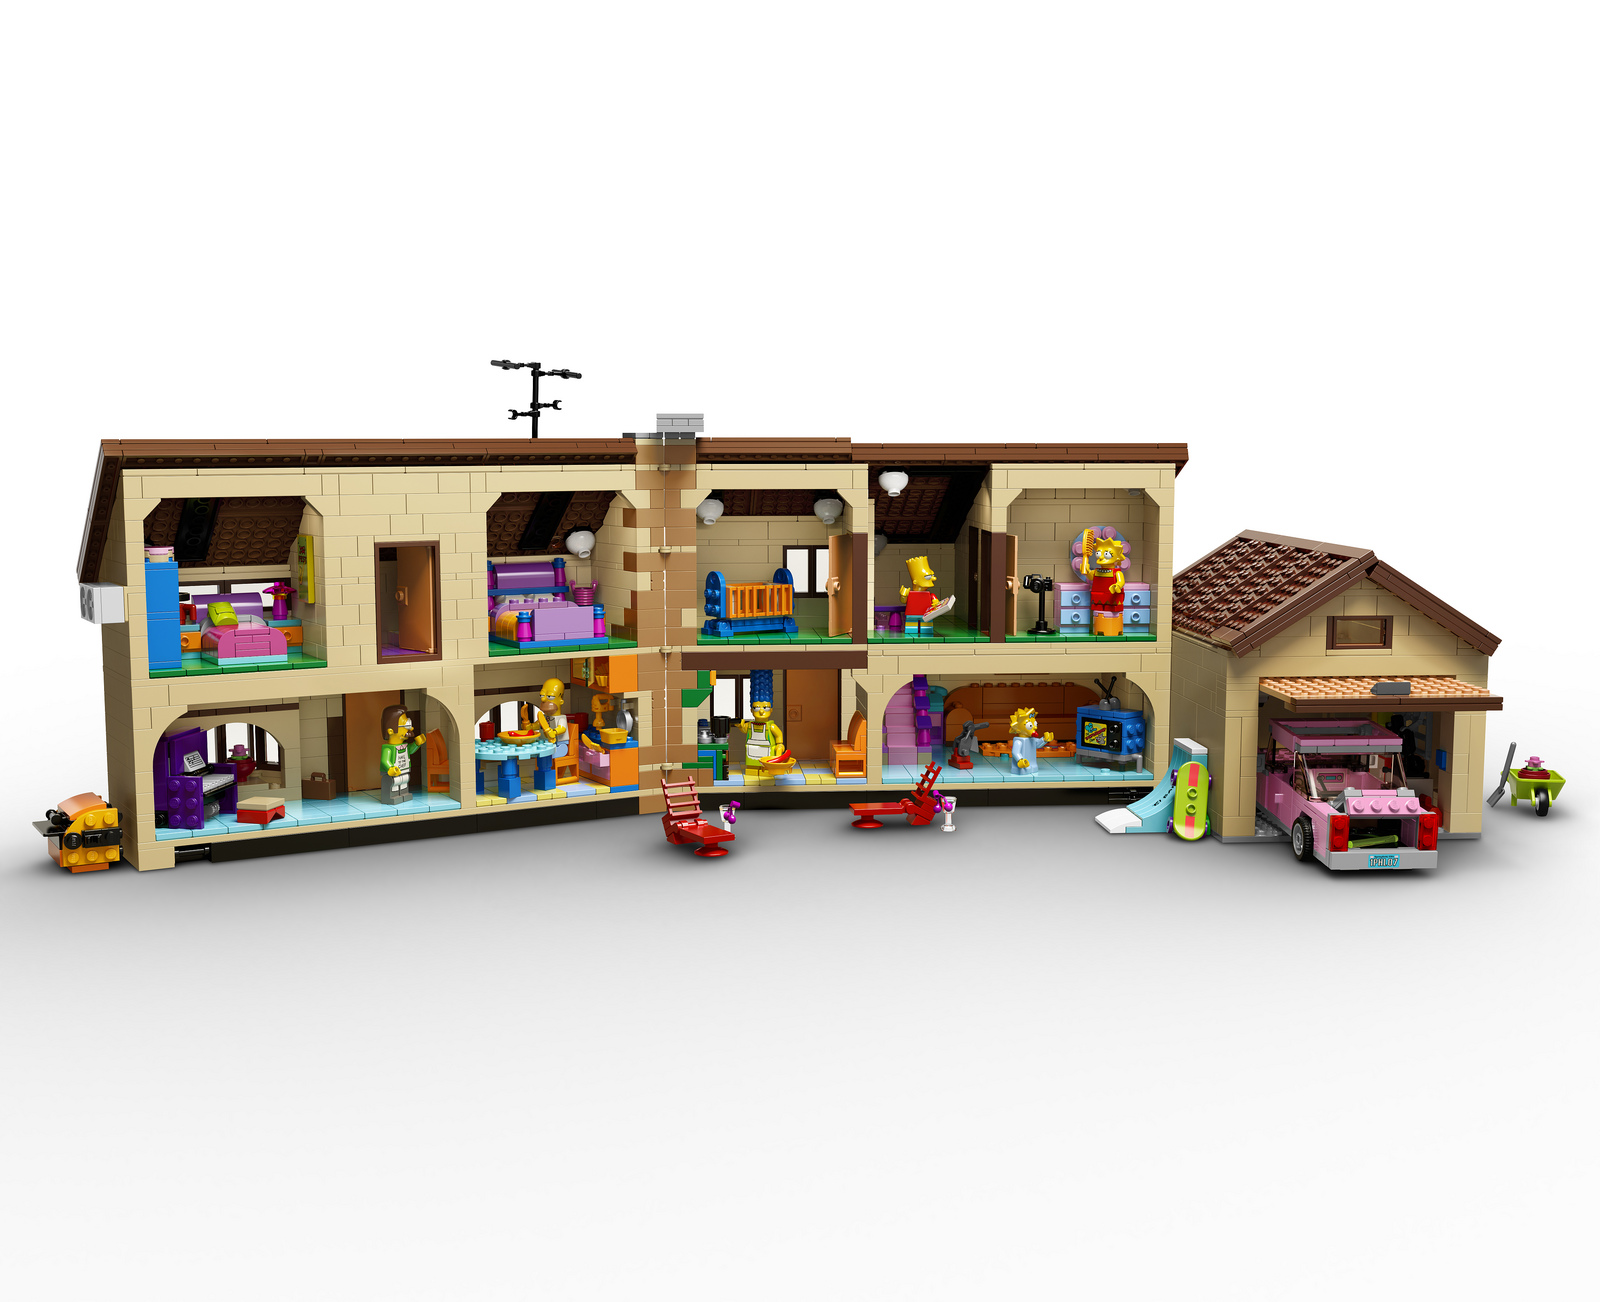 Le kit lego officiel de la maison des simpsons - Comment faire une ville lego city ...